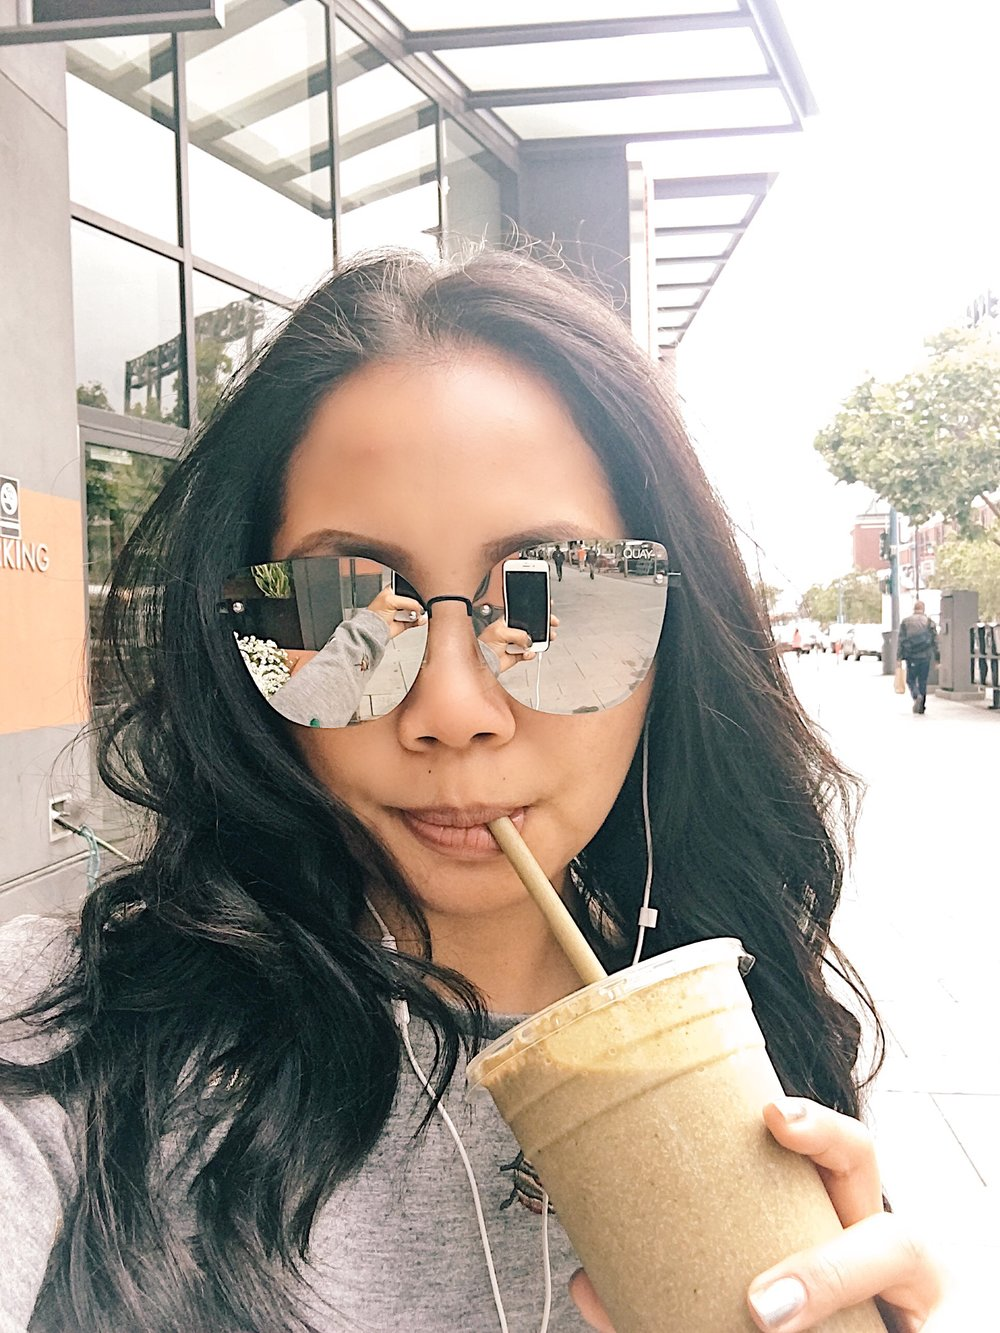 Me sipping on the smoothie from Barry's Bootcamp at the SOMA location